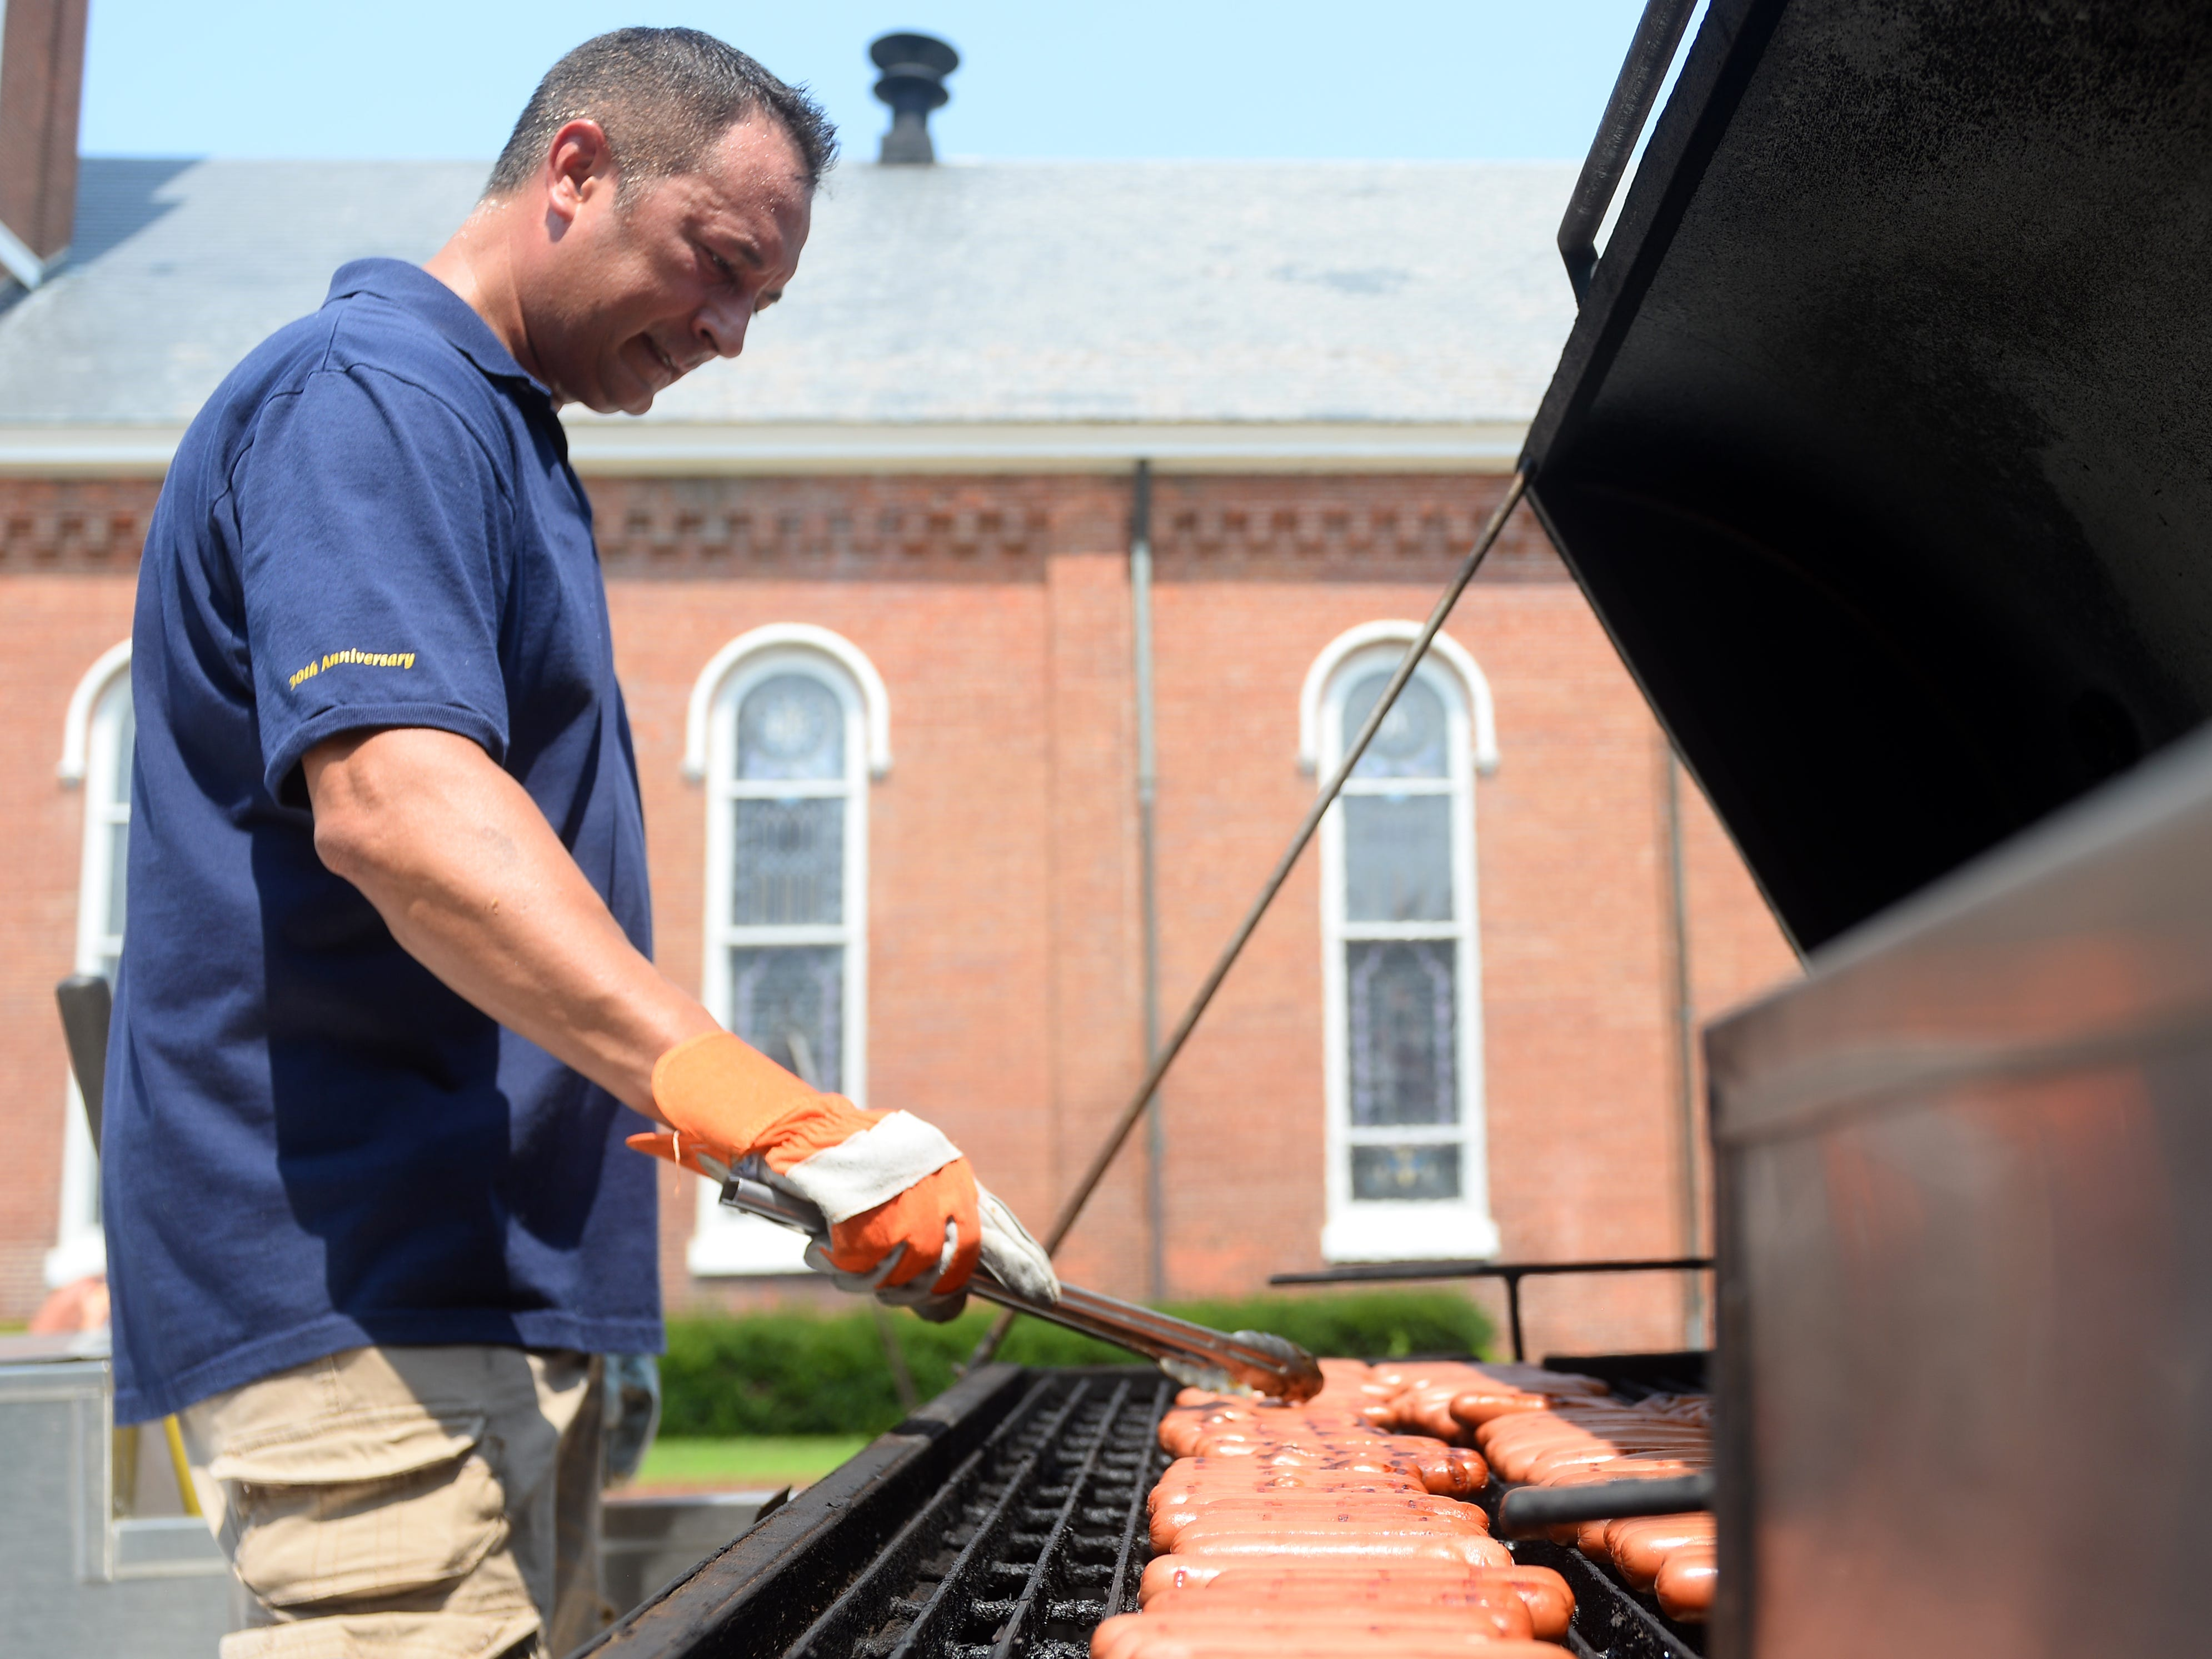 A Millville Play Streets volunteer cooks up some hotdogs during the event on Wednesday, August 15.